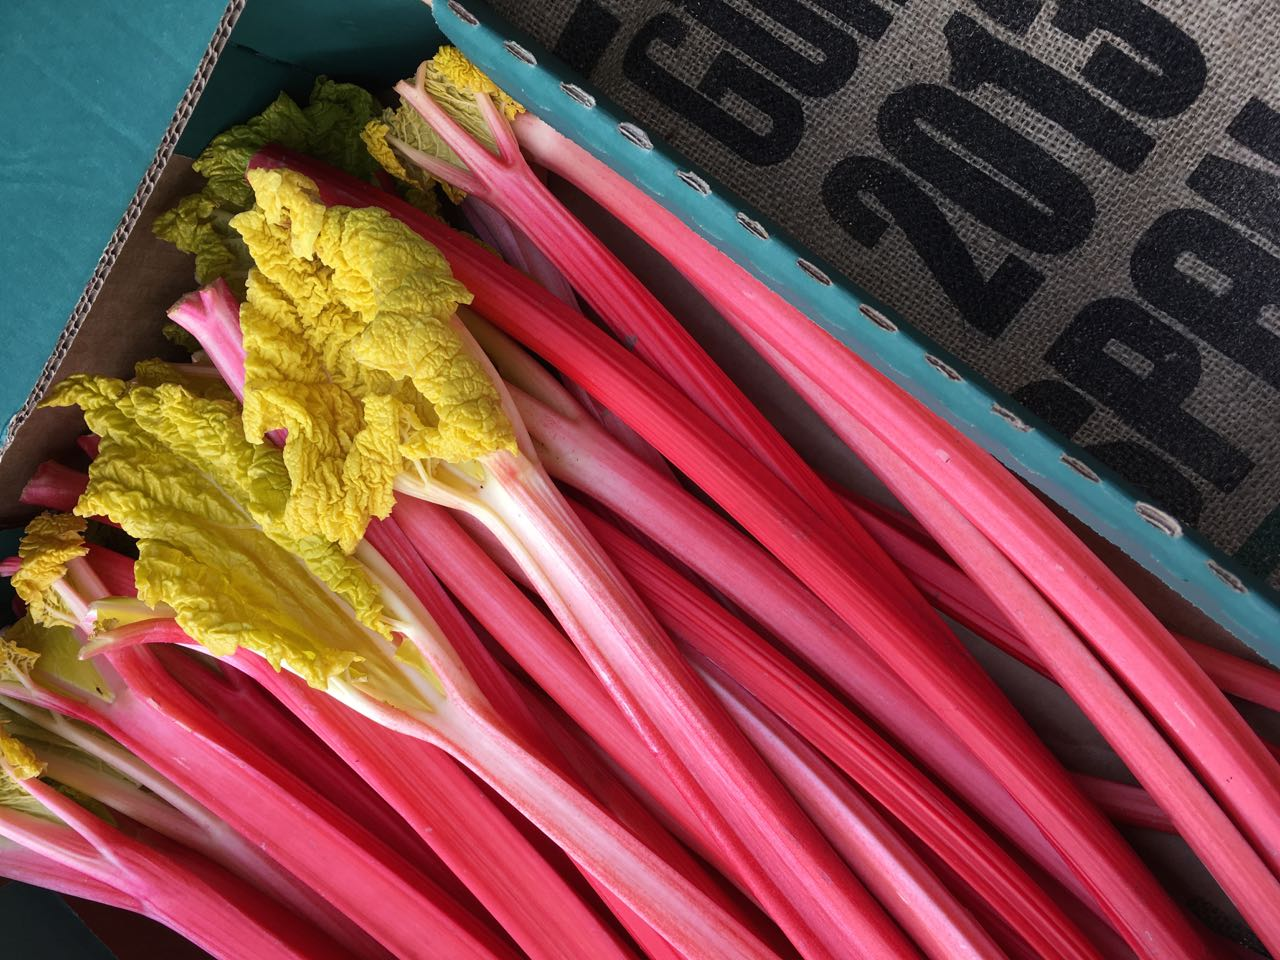 Yorkshire Forced Rhubarb    Photo ©Evie Saffron Strands   As we enter what is normally the coldest month of the year, there is a surprising amount to look forward to in the fruit and vegetable world to cut through the cold and grey. Vibrant pink Yorkshire Forced Rhubarb, new season citrus; bitter-sweet yellow/green, pink and red Chicories; and the greens and purples of the brassicas are just the start.  As I write we have:     Tender pink stems of  Yorkshire Forced Rhubarb .   Seville Oranges  for making bitter marmalade and buttery curd.   Blood Oranges  for juicing or salads.  Deep red sweet-sharp  Pomegranates .  Crunchy, salty  Camone and Marinda Winter Tomatoes .  Bunches of the Mediterranean succulent Barba di Frate/Agretti/Monk's Beard.  Bitter-sweet Italian  Chicoria  including  Puntarelle  (Catalogna) and  Cime di Rapa .  Several varieties of colourful bitter-sweet  Radicchio  and, milder,  Endive .  British  Brassicas  including  Savoy Cabbage , spectacular green and purple hued  January King , blistered  Black Cabbage  (Cavolo Nero), green and purple vitamin and mineral rich  Kale ,  Brussels Sprouts  and  Brussels Tops  which have benefited from a kiss of frost.  Beautiful English  Purple Sprouting Broccoli ,  Cauliflower  and swirling lime-green  Romanesco , with the creaminess of cauliflower and the taste of broccoli.   Root vegetables including  Celeriac ,  Jerusalem Artichokes ,  Swede ,  Beetroot  and   organic  Heritage Carrots  are all British grown this week, as are the  Leeks .  A variety of  Winter Squash  and  Pumpkins .   Potato  varieties this week are  Cyprus  and  Desiree ,  Maris Piper , and waxy-fleshed  Pink Fir Apple  and  La Ratte .  Fresh organic  Ginger Root  and  Turmeric Root .  A freshly-stocked  londonfermentary.com  fridge.